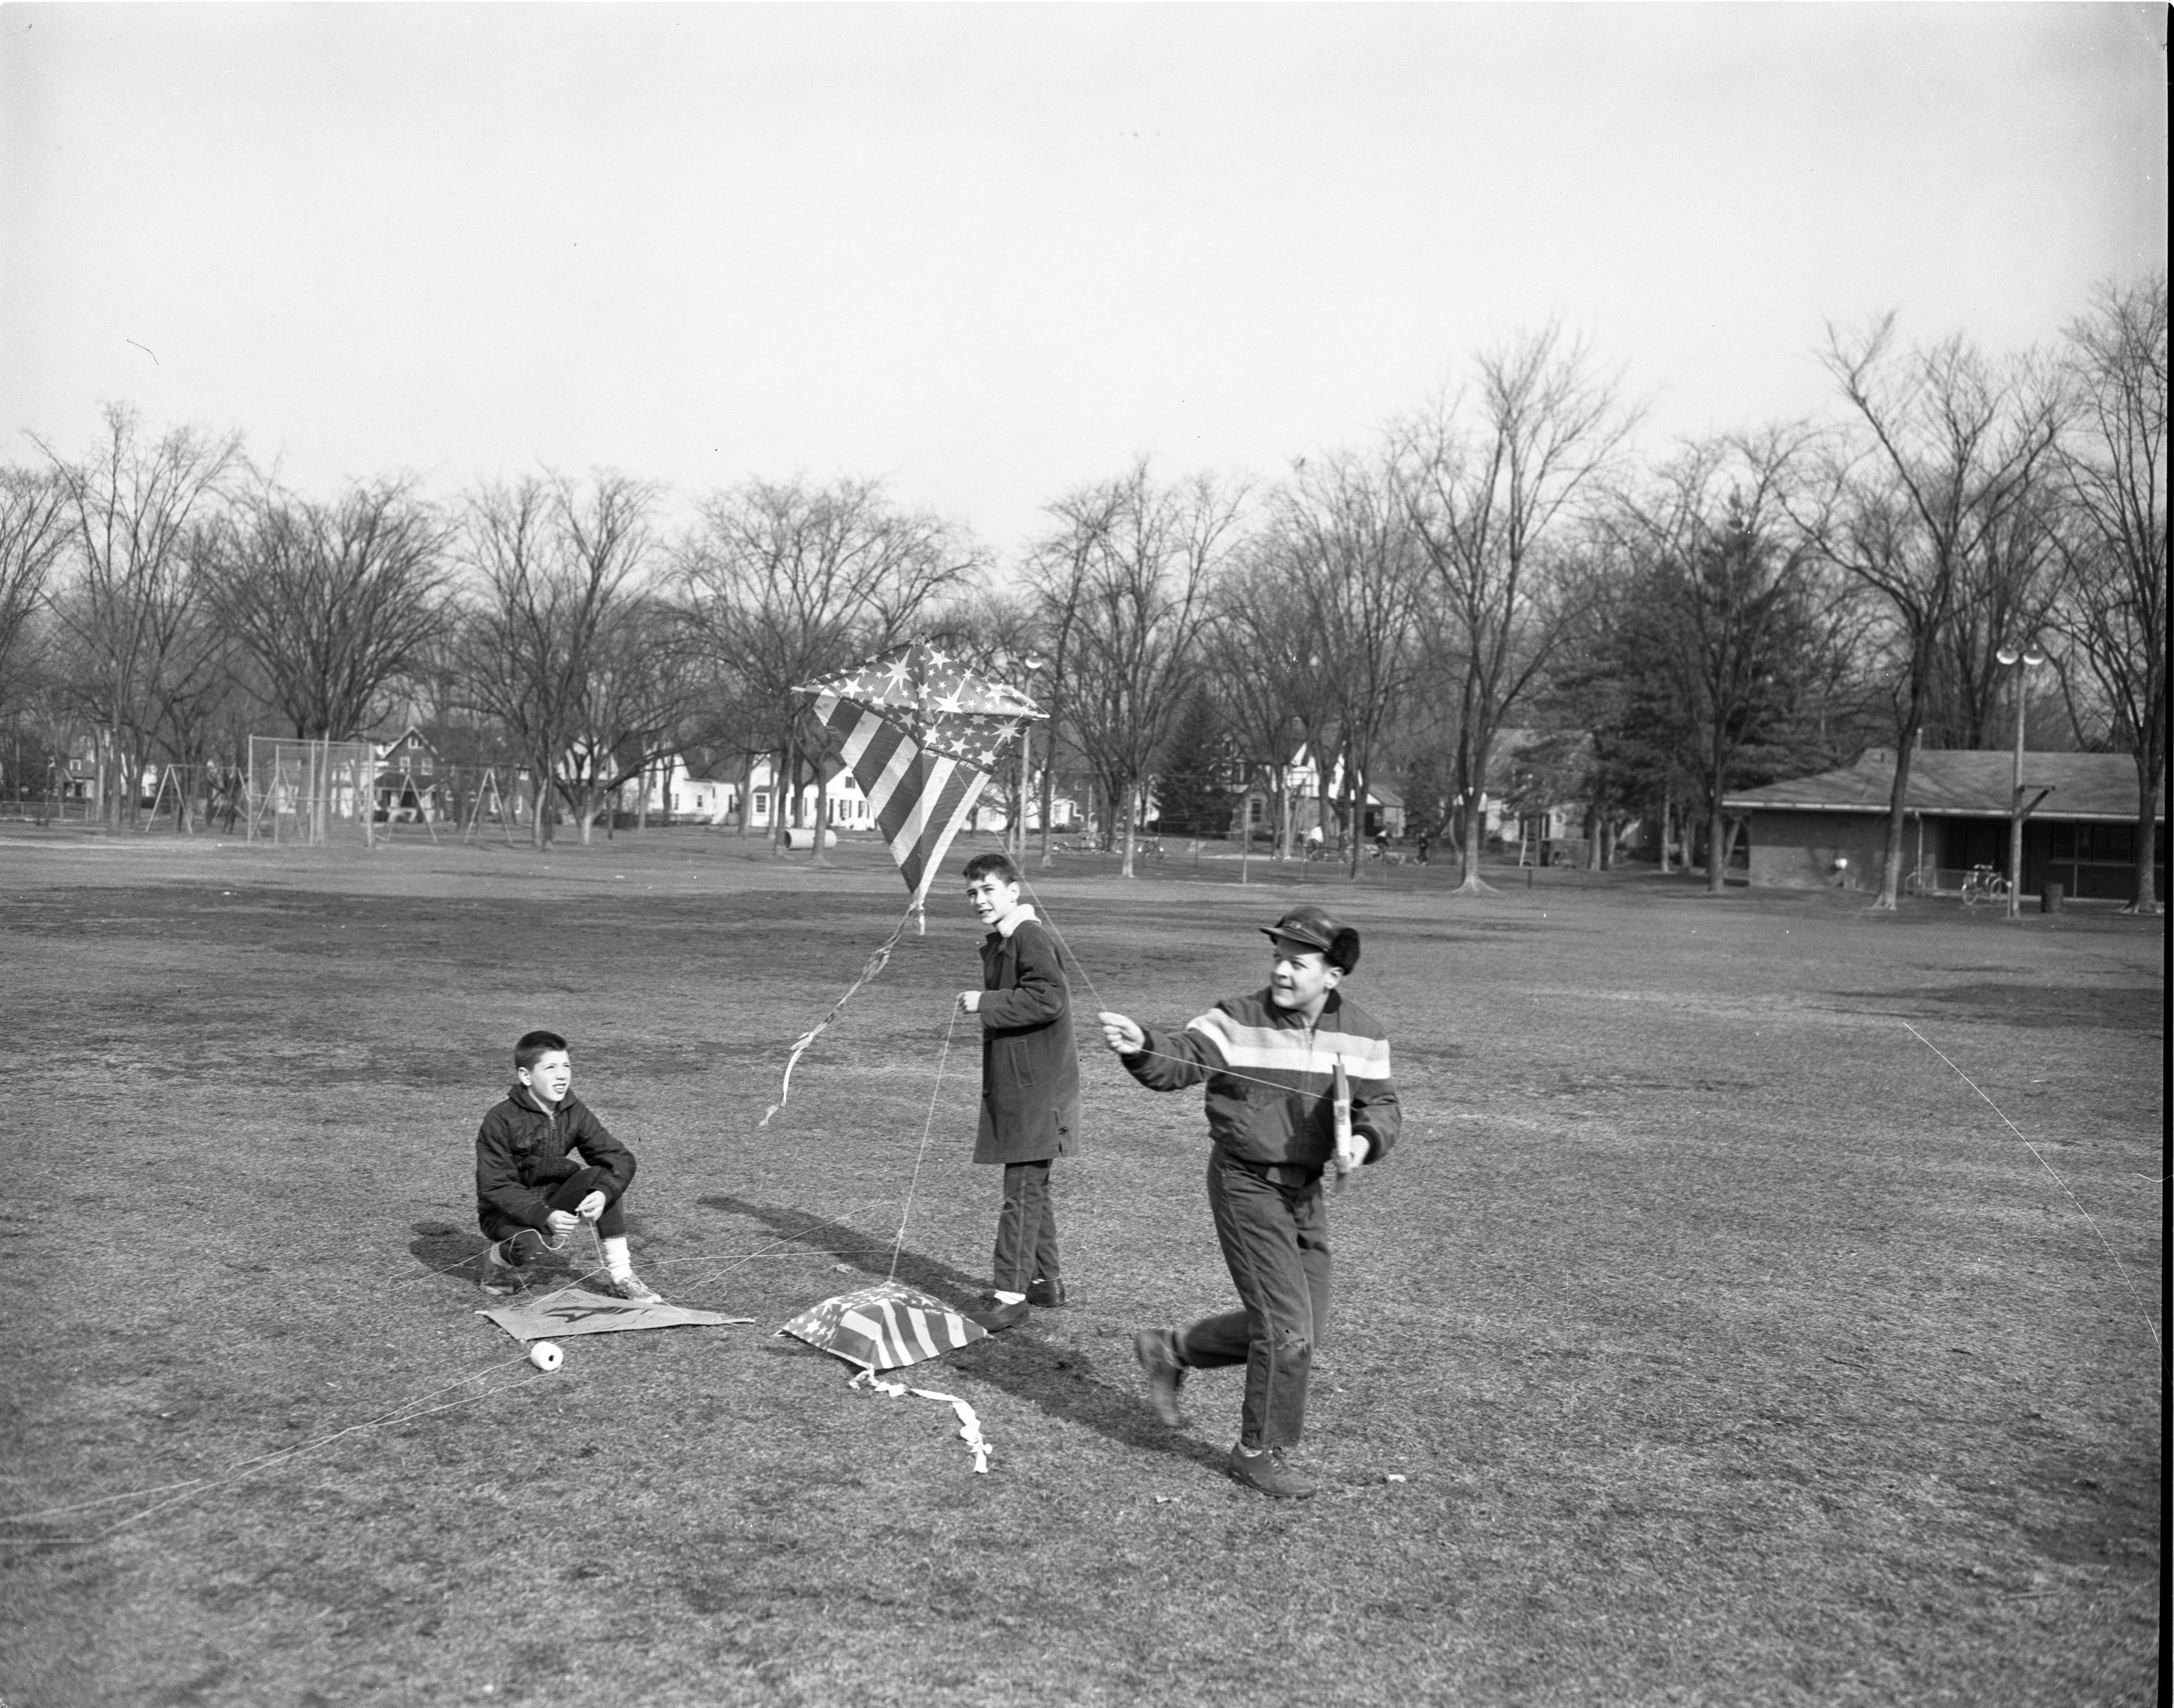 Kite Flying At Burns Park, March 1964 image